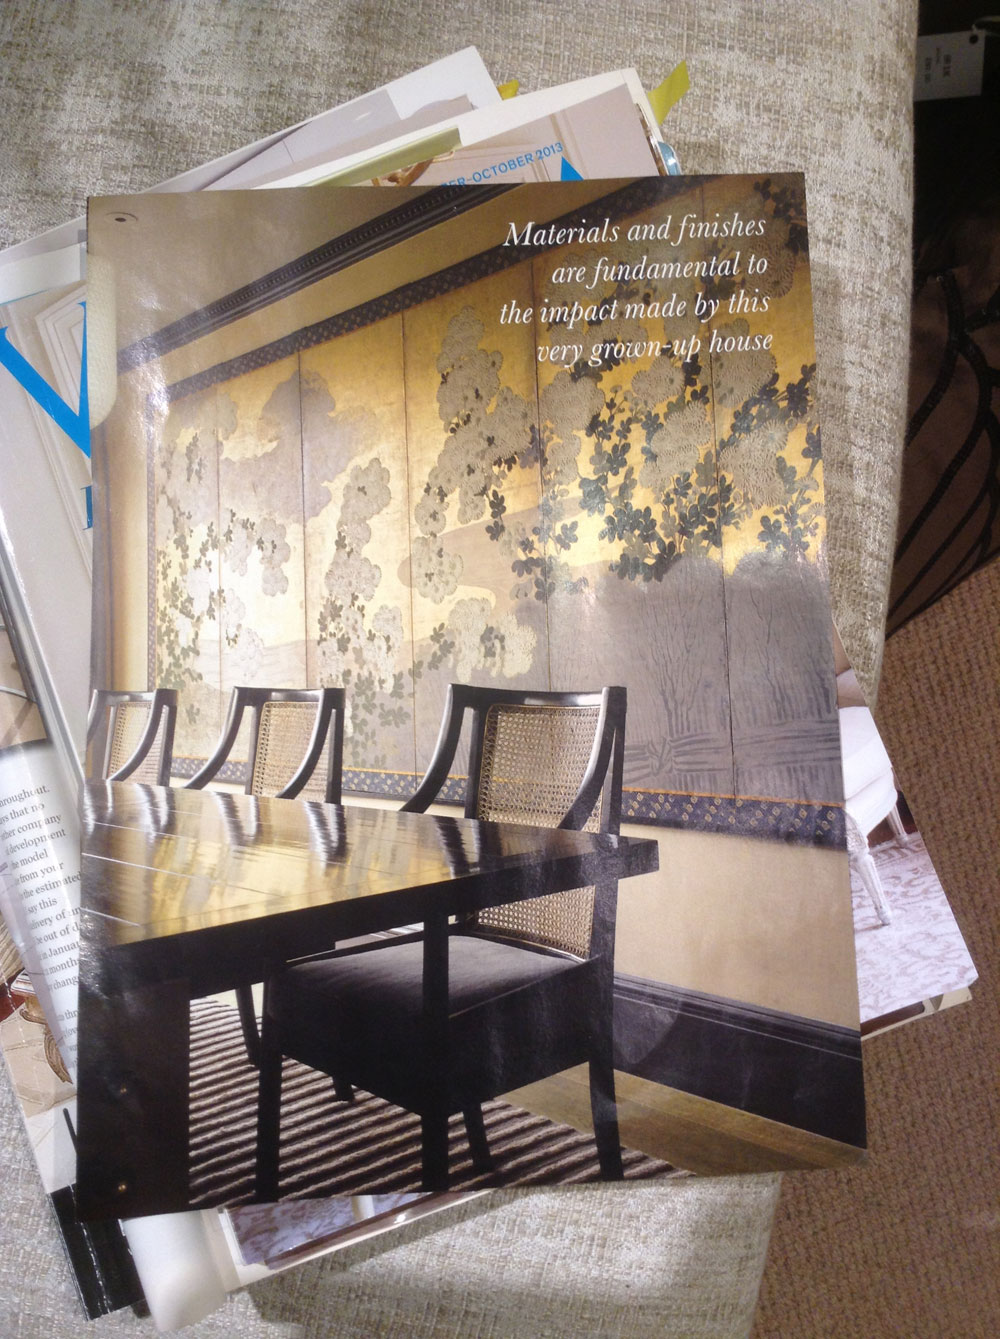 Her latest mood board started with a tear sheet from House & Garden.